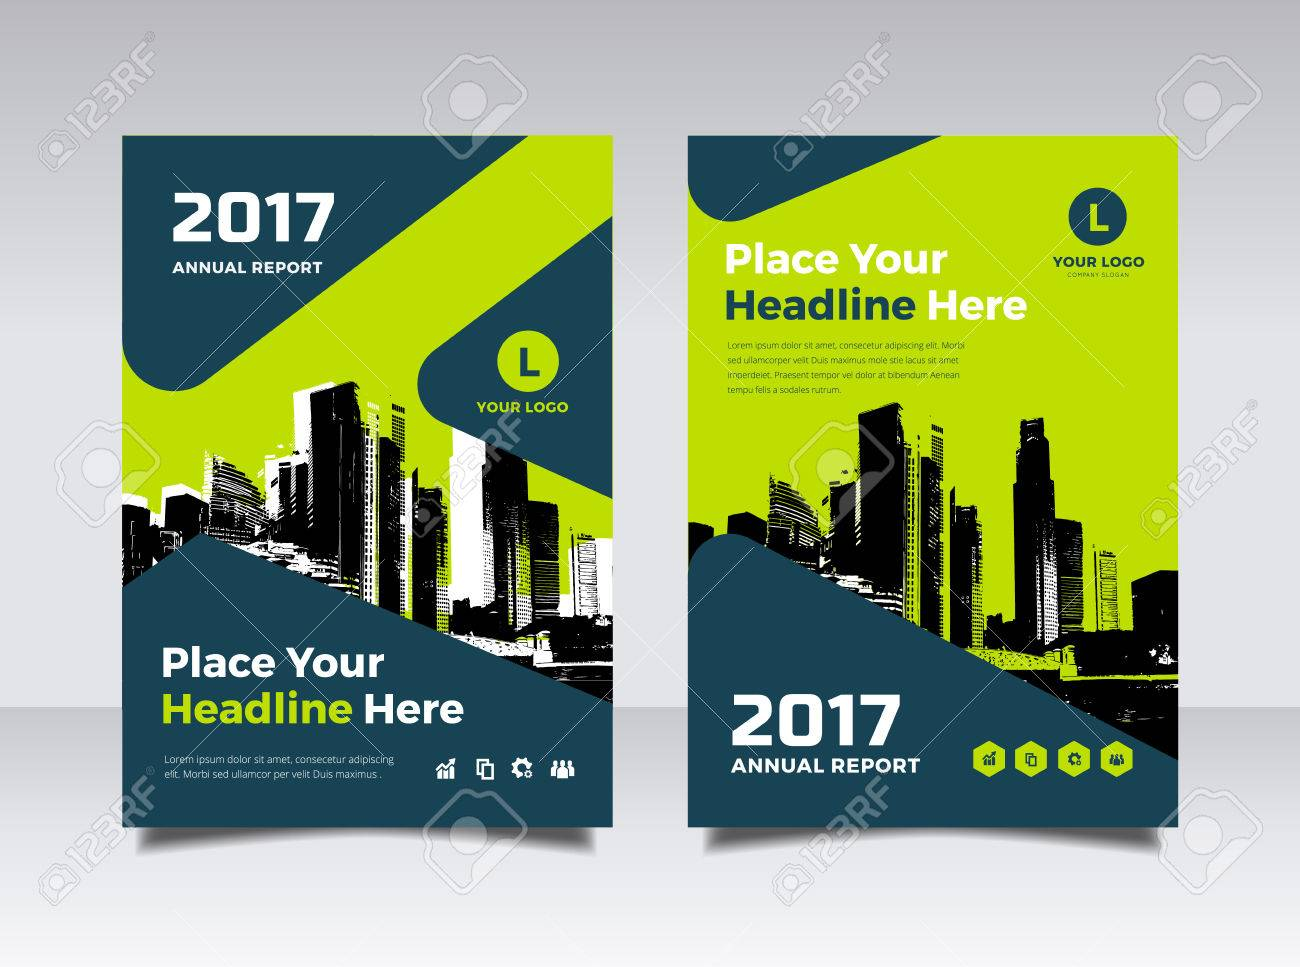 business book cover design template in a4 easy to adapt to brochure